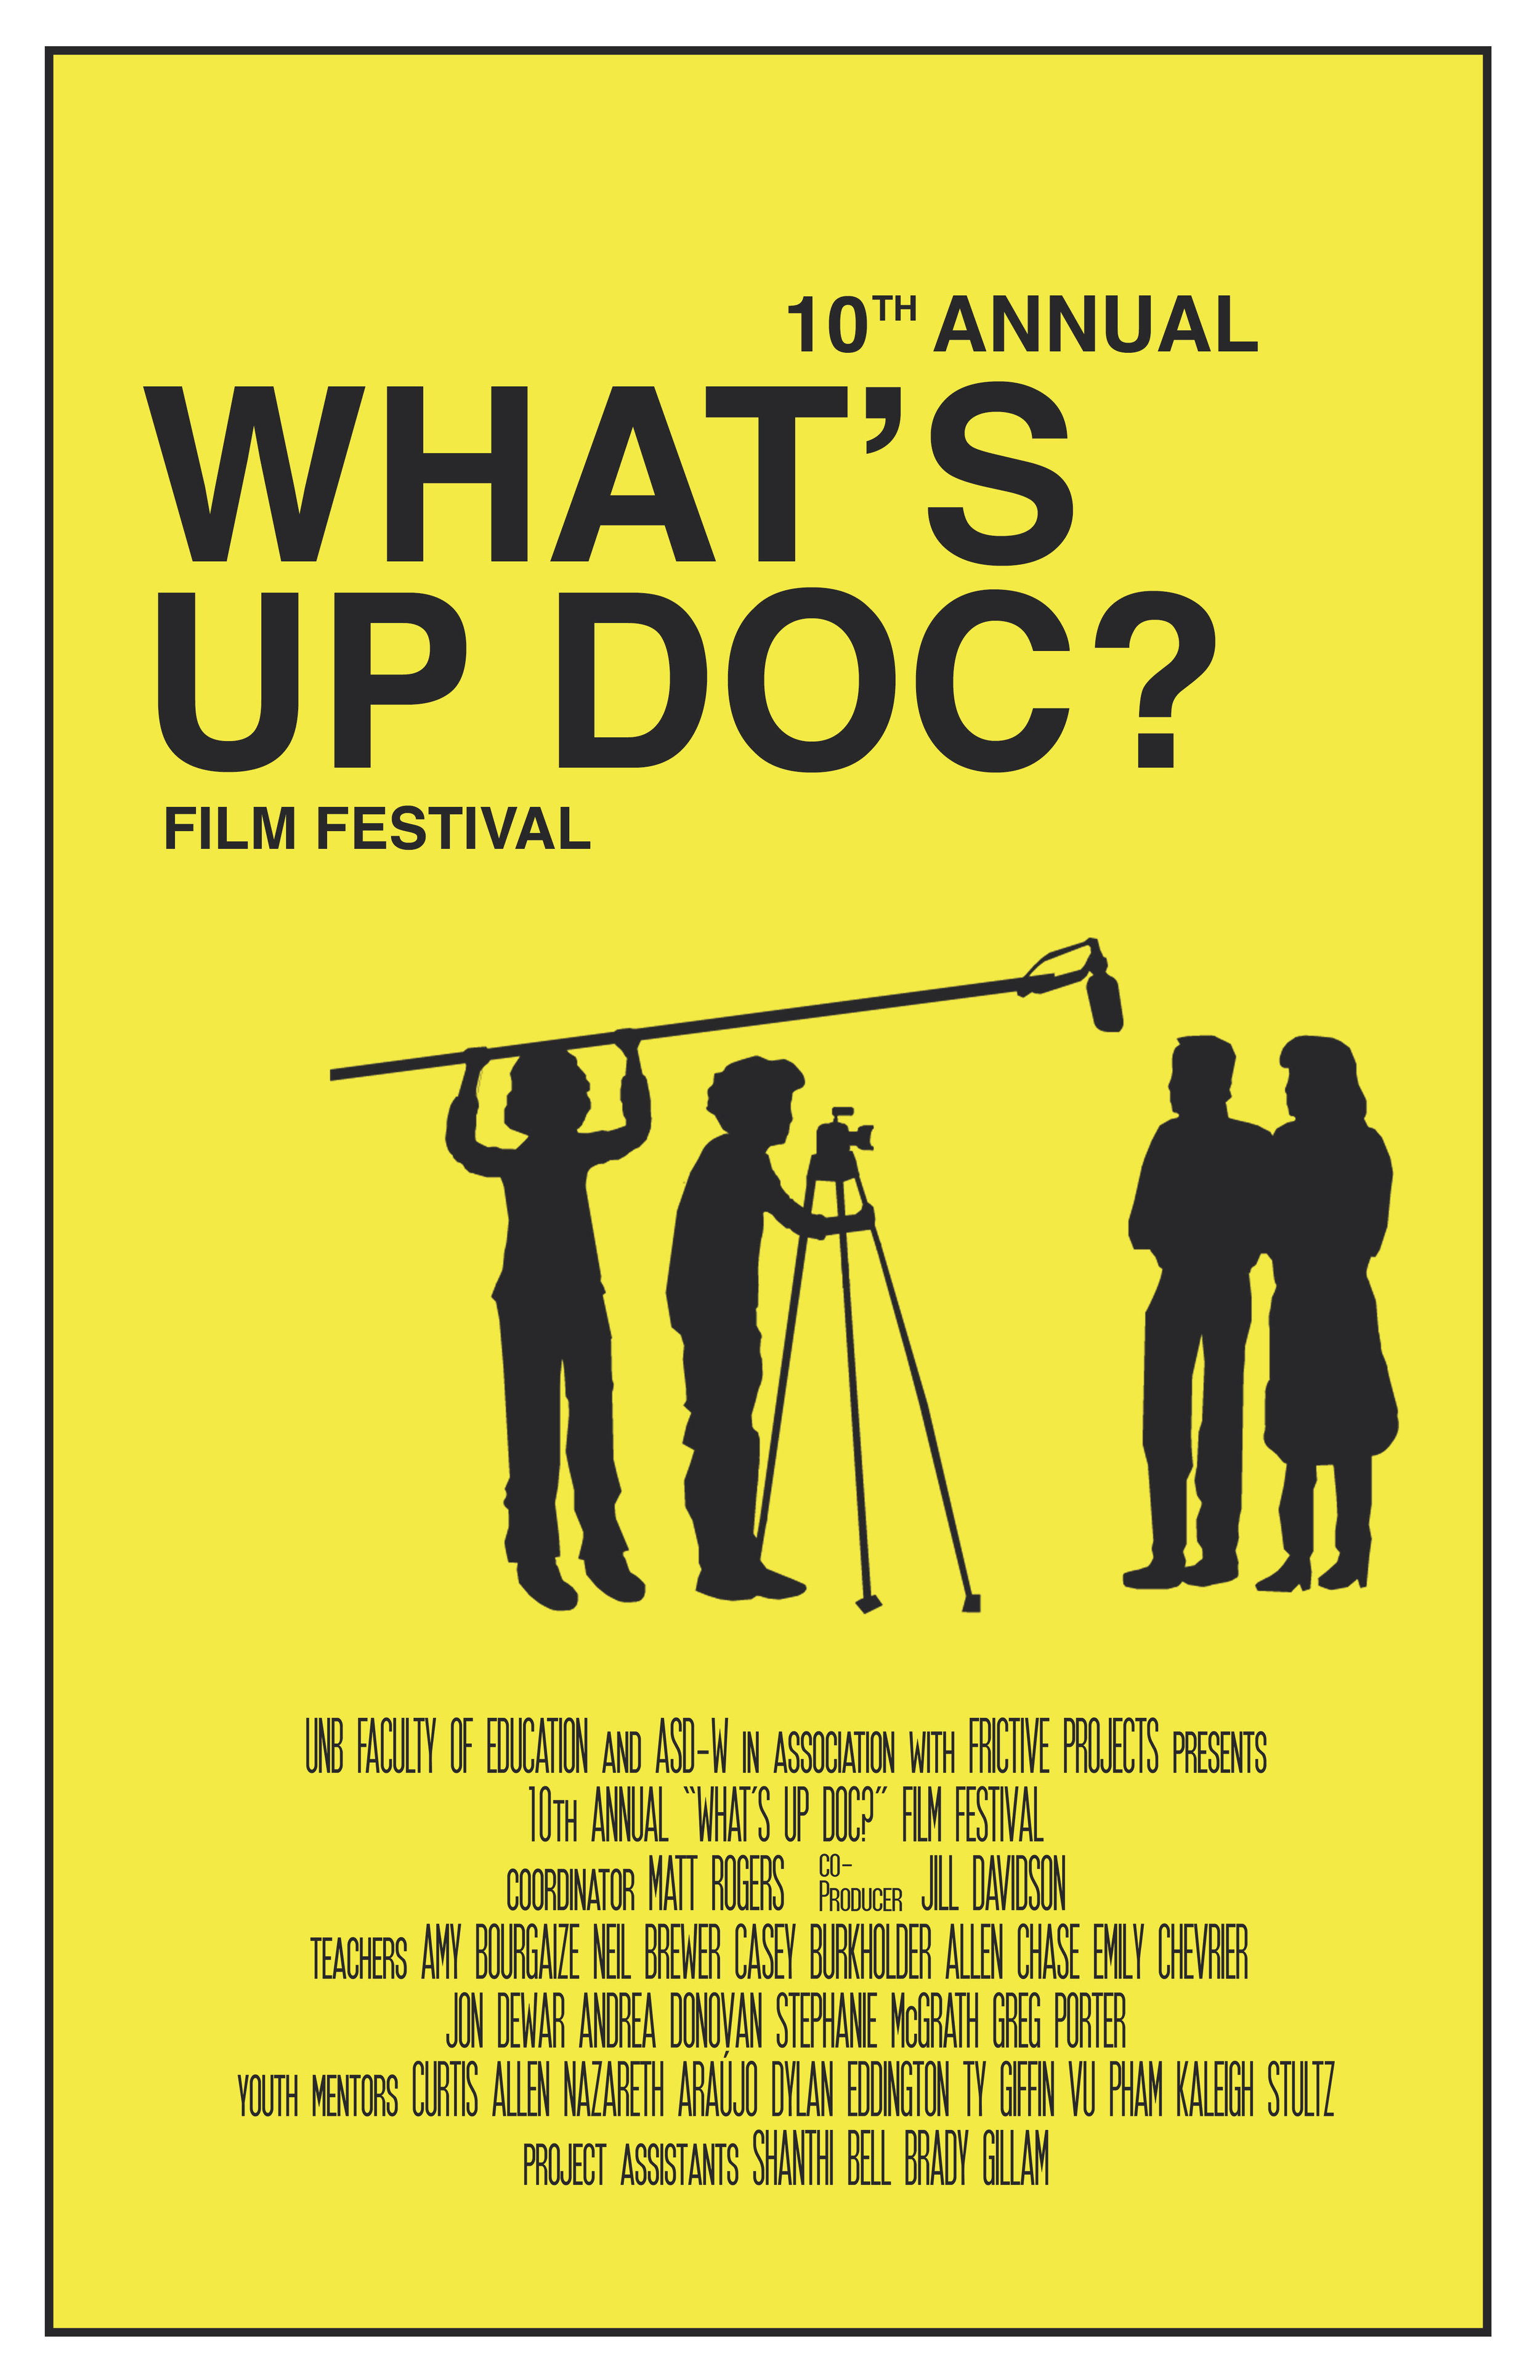 What's Up, Doc? - Coming up on its tenth edition, What's Up Doc? is a socially-conscious initiative pioneered by Frictive's Dr. Matt Rogers involving students from New Brunswick's Anglophone School District West high schools. What's Up Doc? is a program created to give students the tools and film making skills necessary to engage in participatory documentary film making. It aims to provide a platform to give a voice to a demographic whose voice often goes unheard in Atlantic Canada, and to allow them to voice their perspective while examining the social issues that affect their every day lives. To date there has been over forty youth-driven documentary films created, telling the stories that matter to them and illuminating the struggles faced by the youth of today.